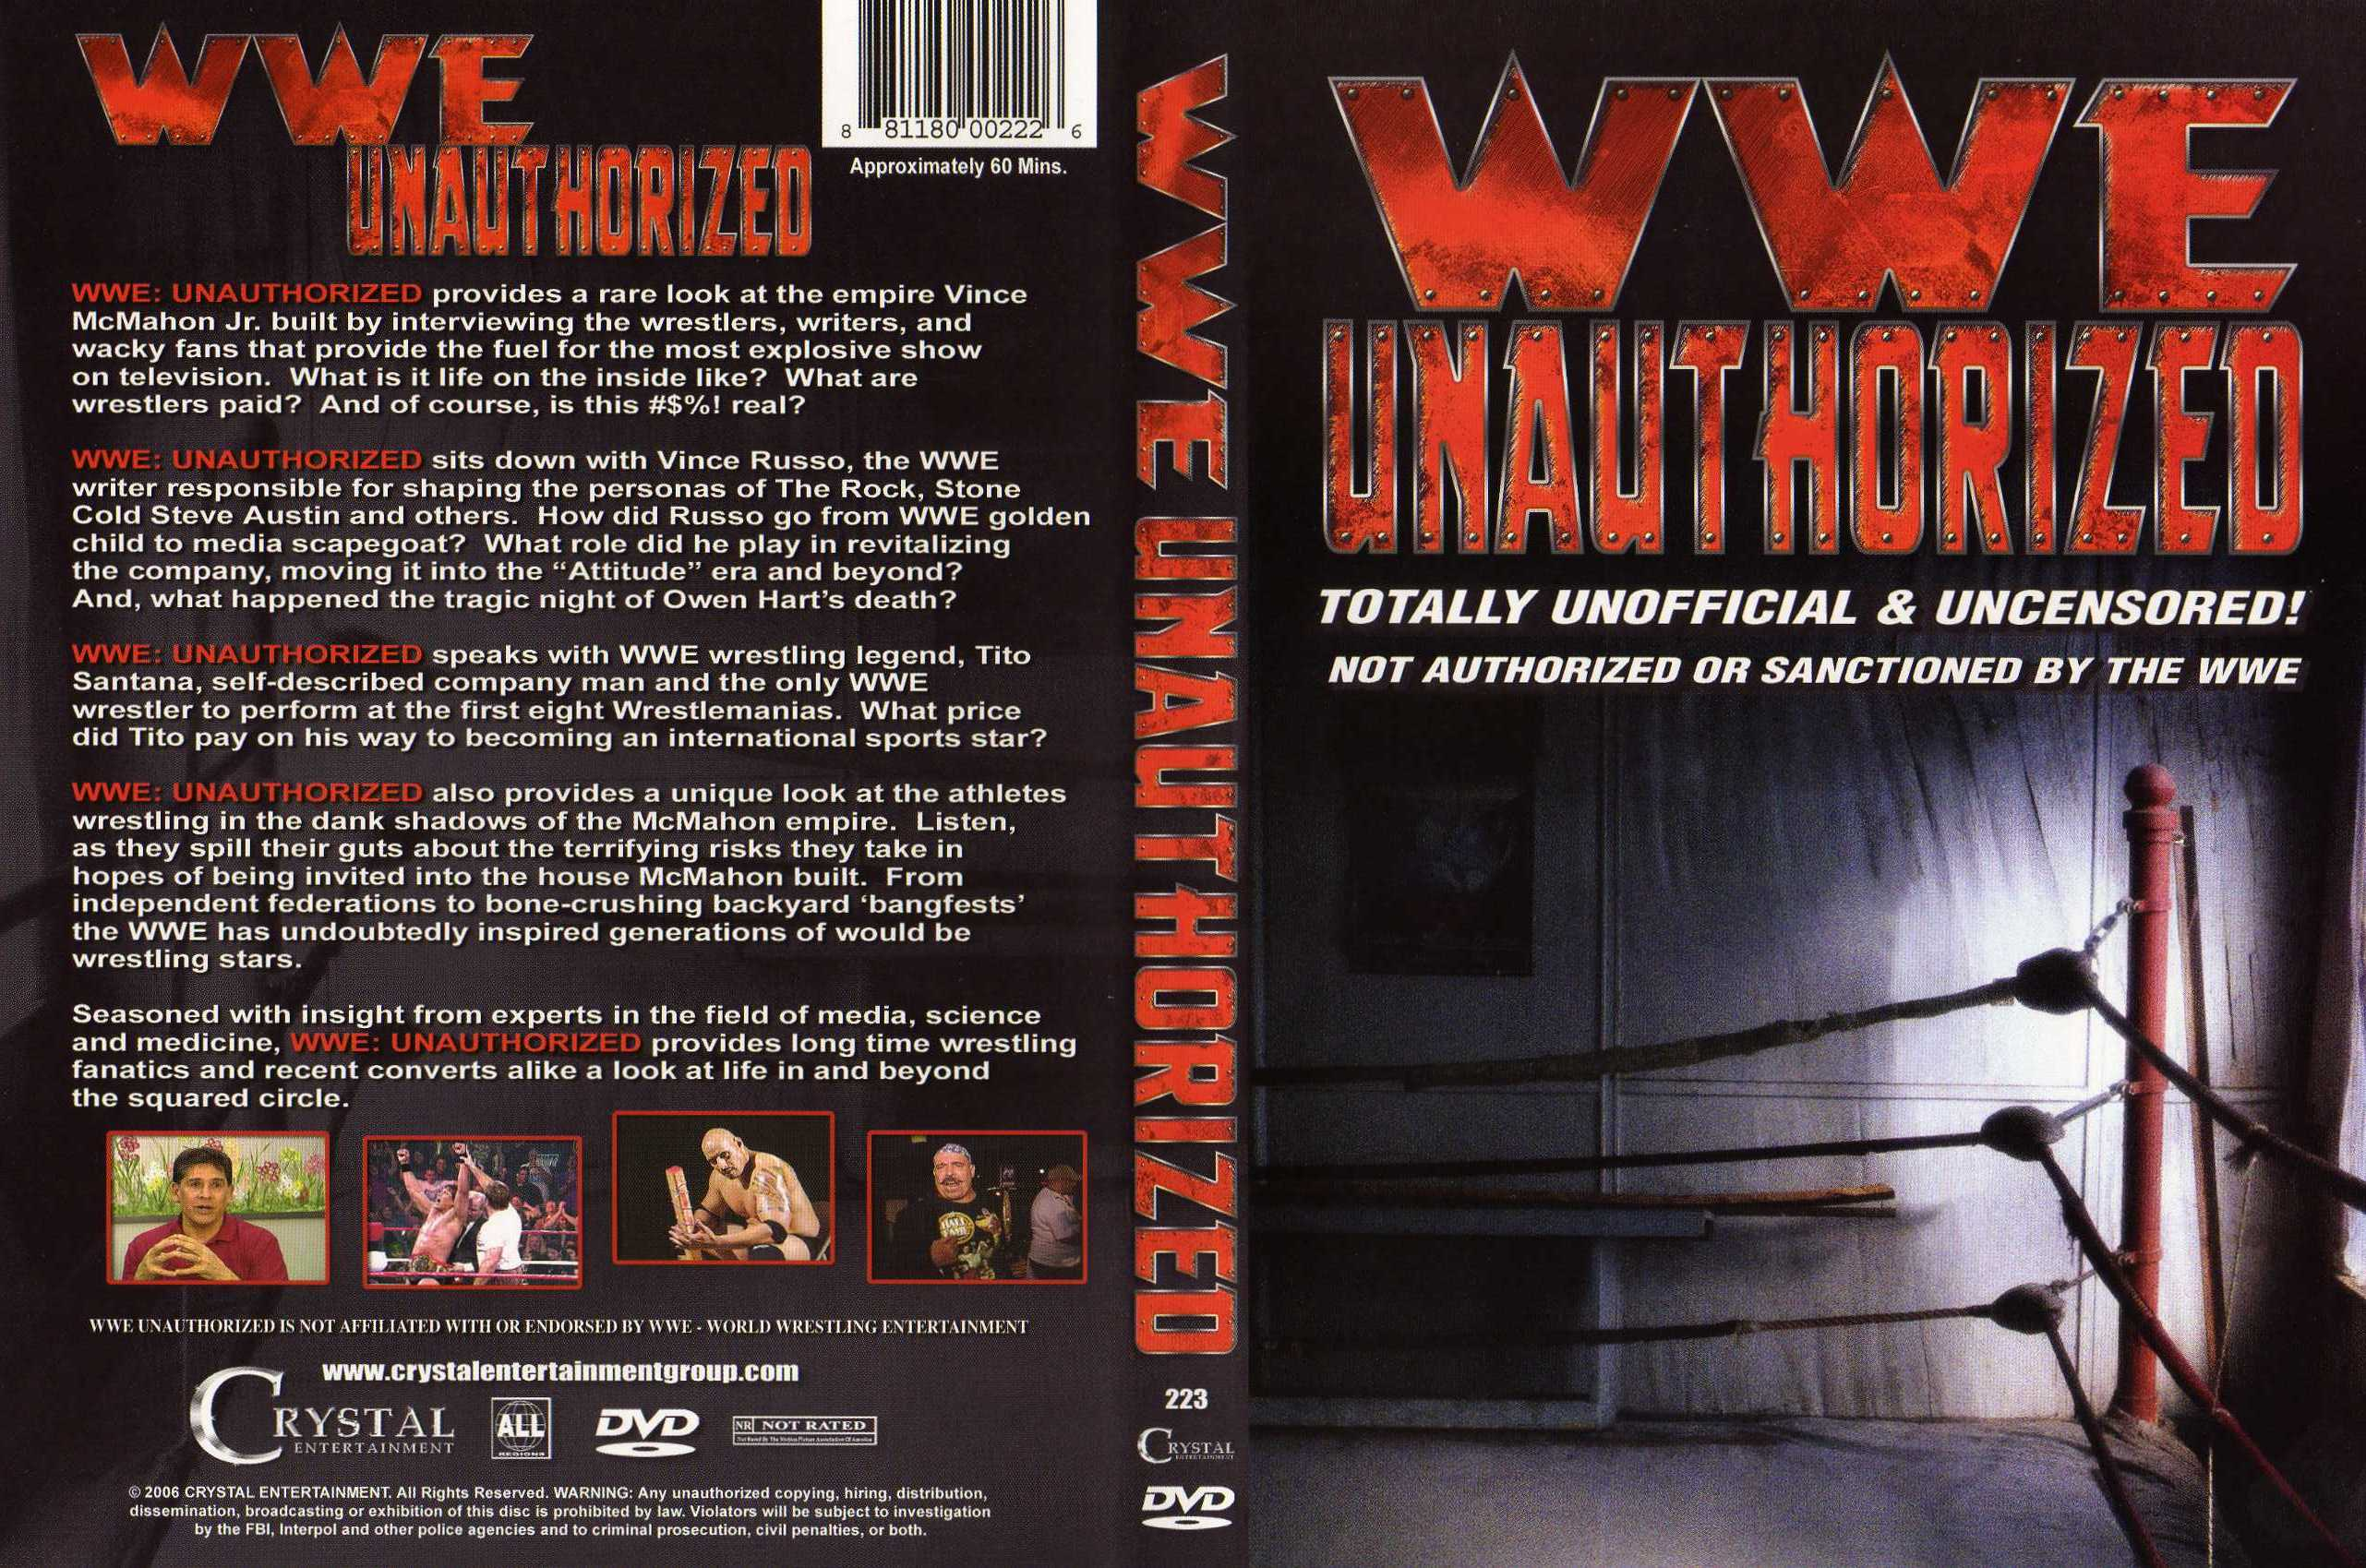 wwe unauthorized